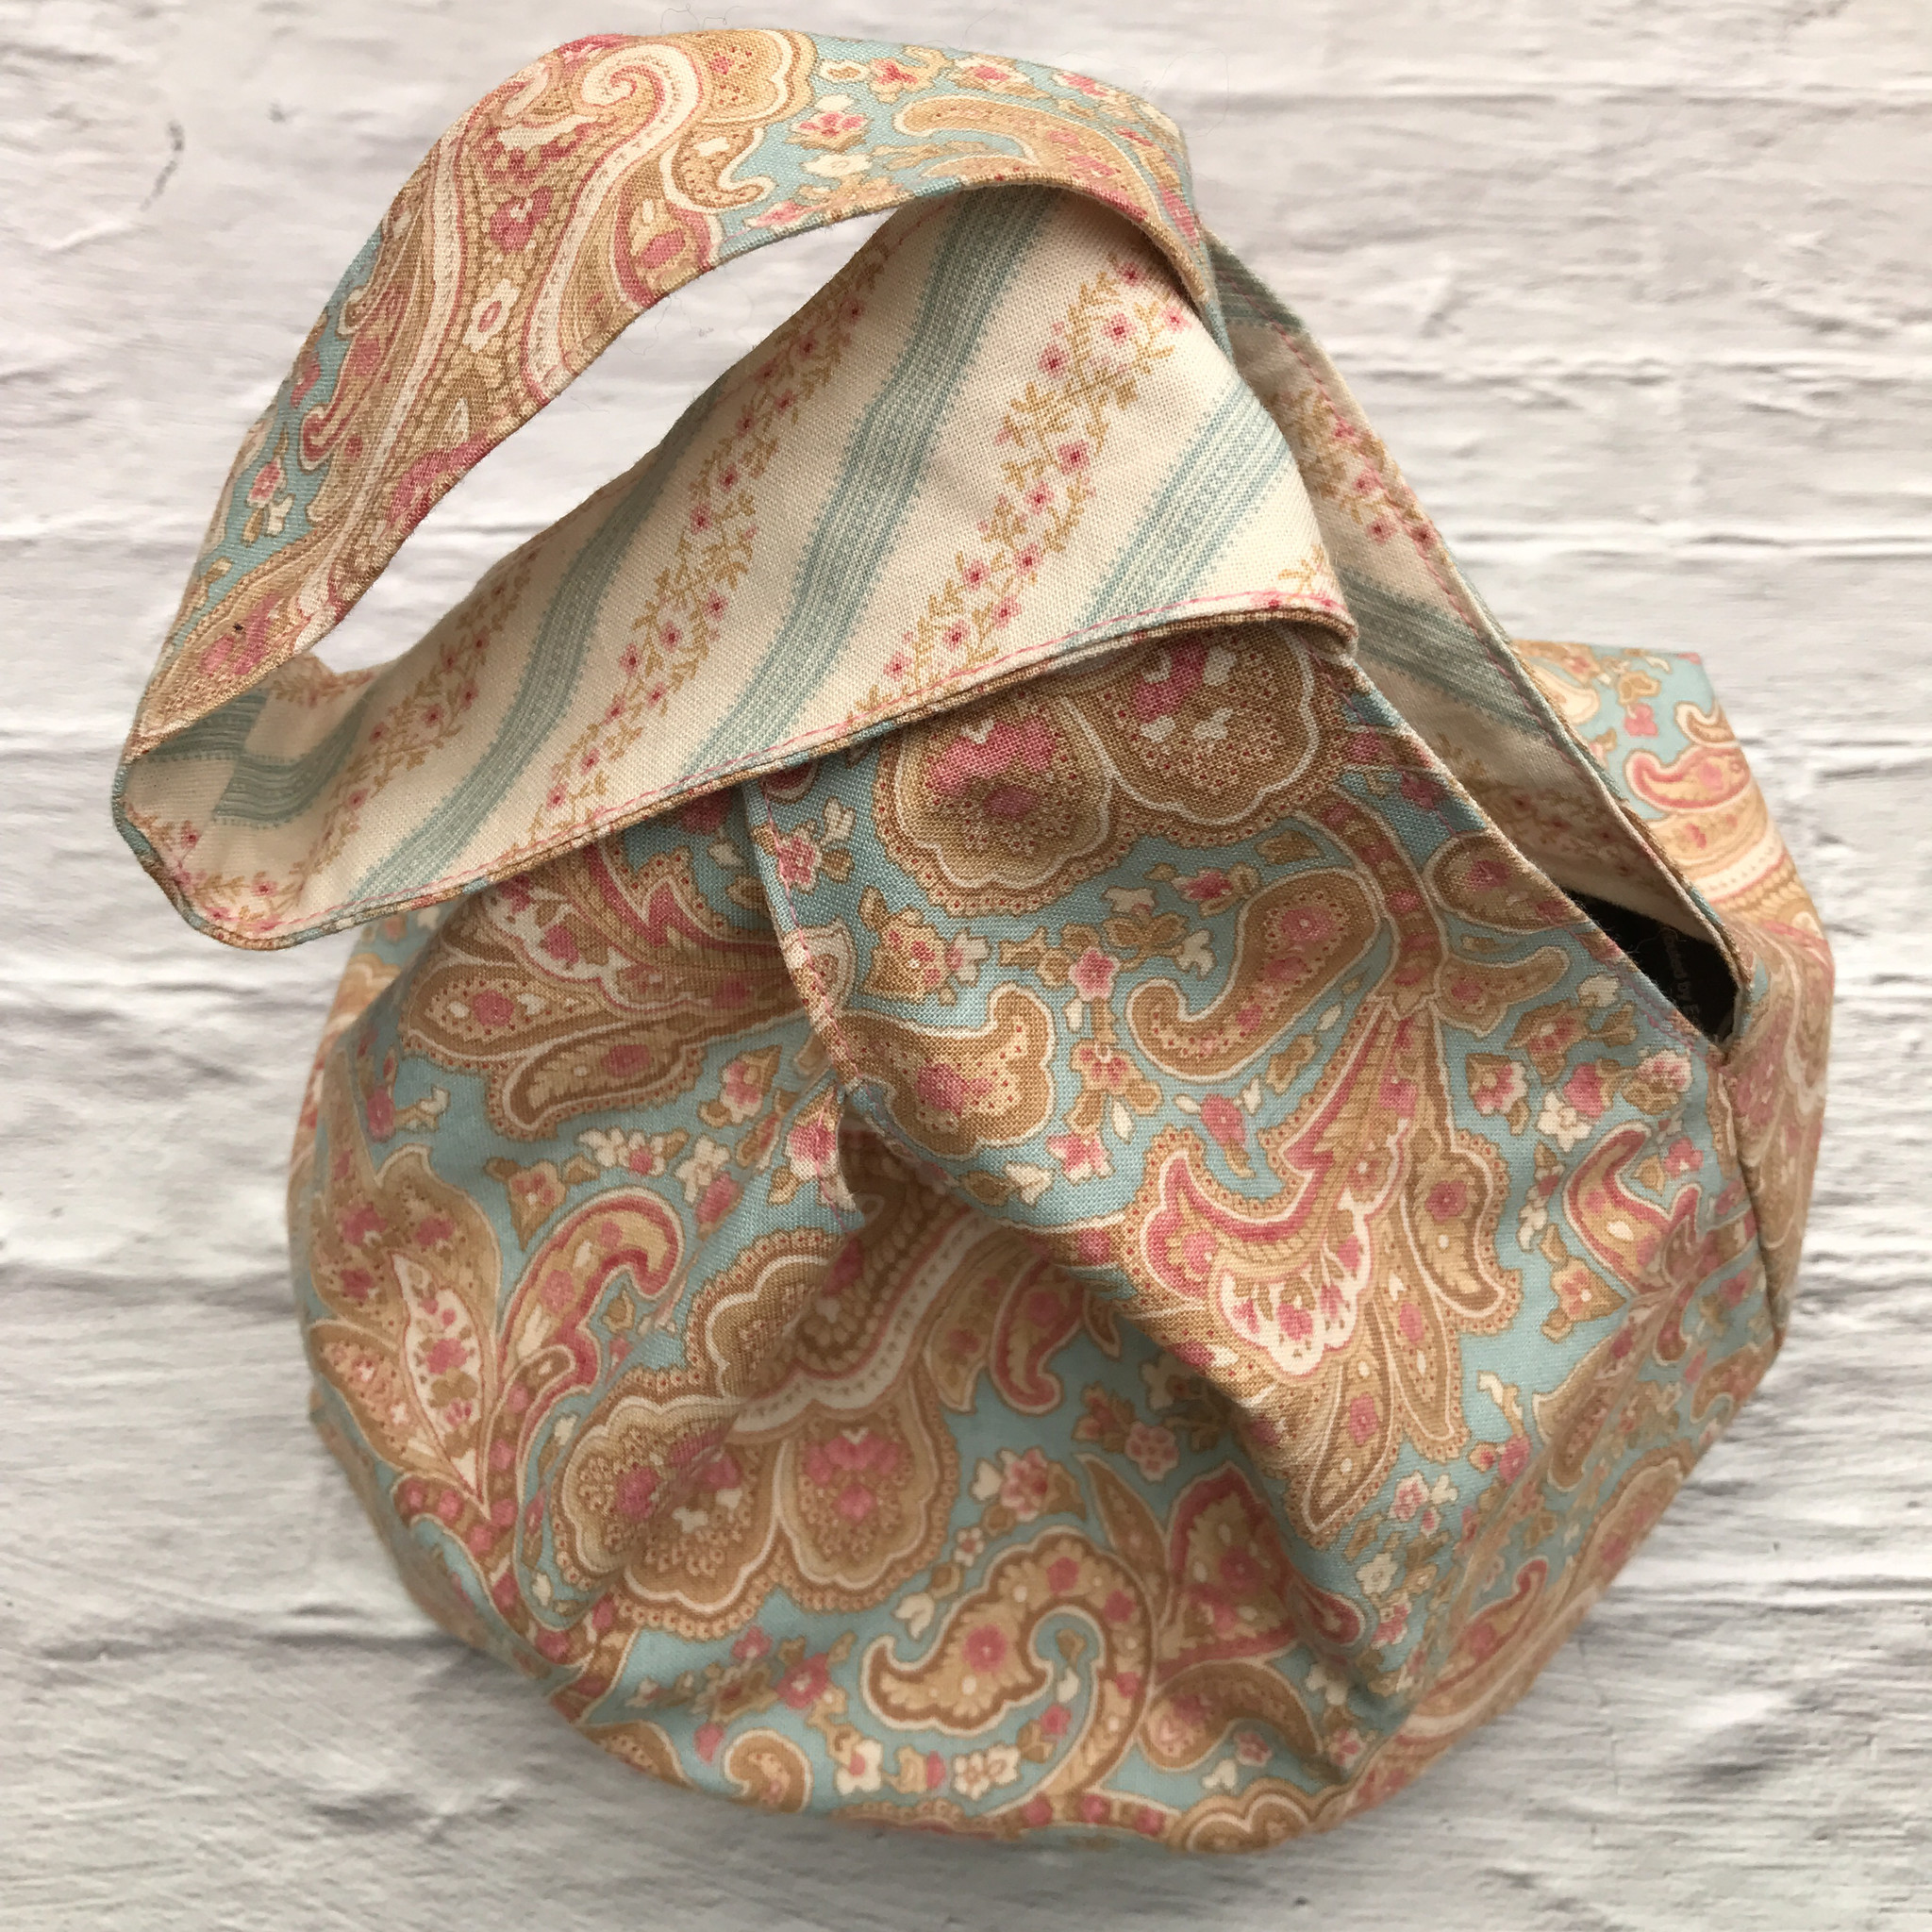 Japanese Knot Bag - Medium